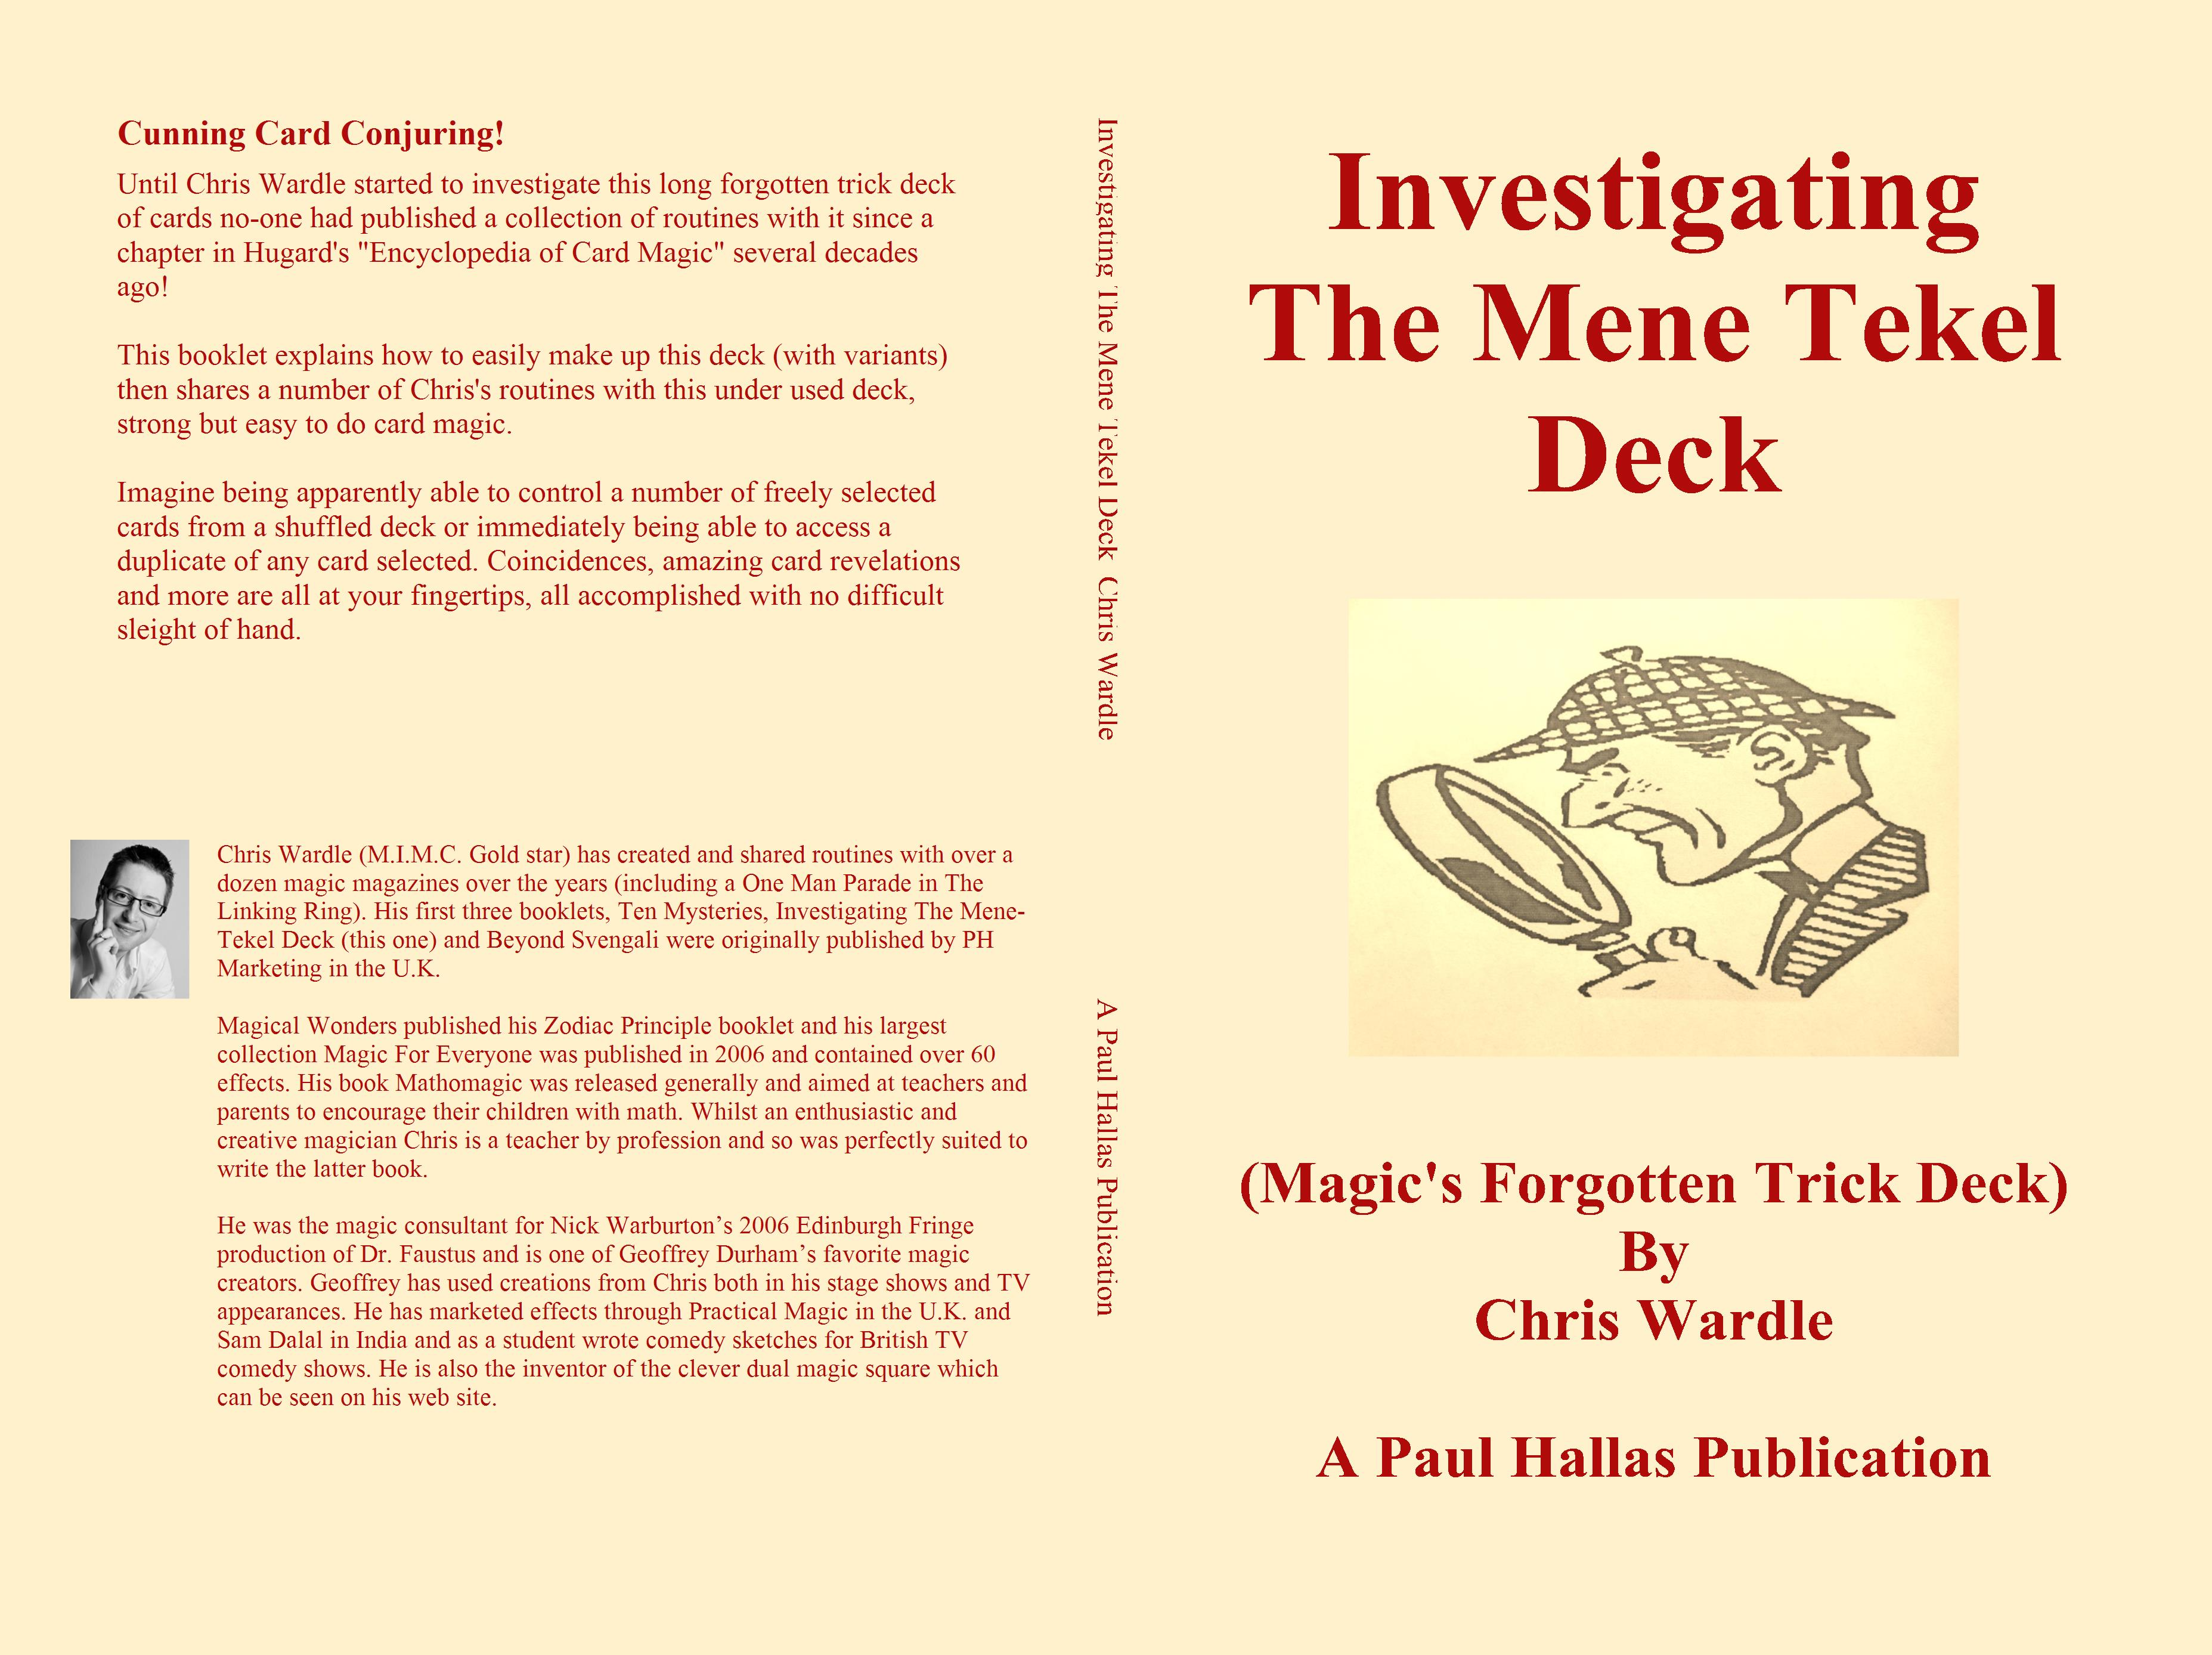 Investigating The Mene Tekel Deck cover image